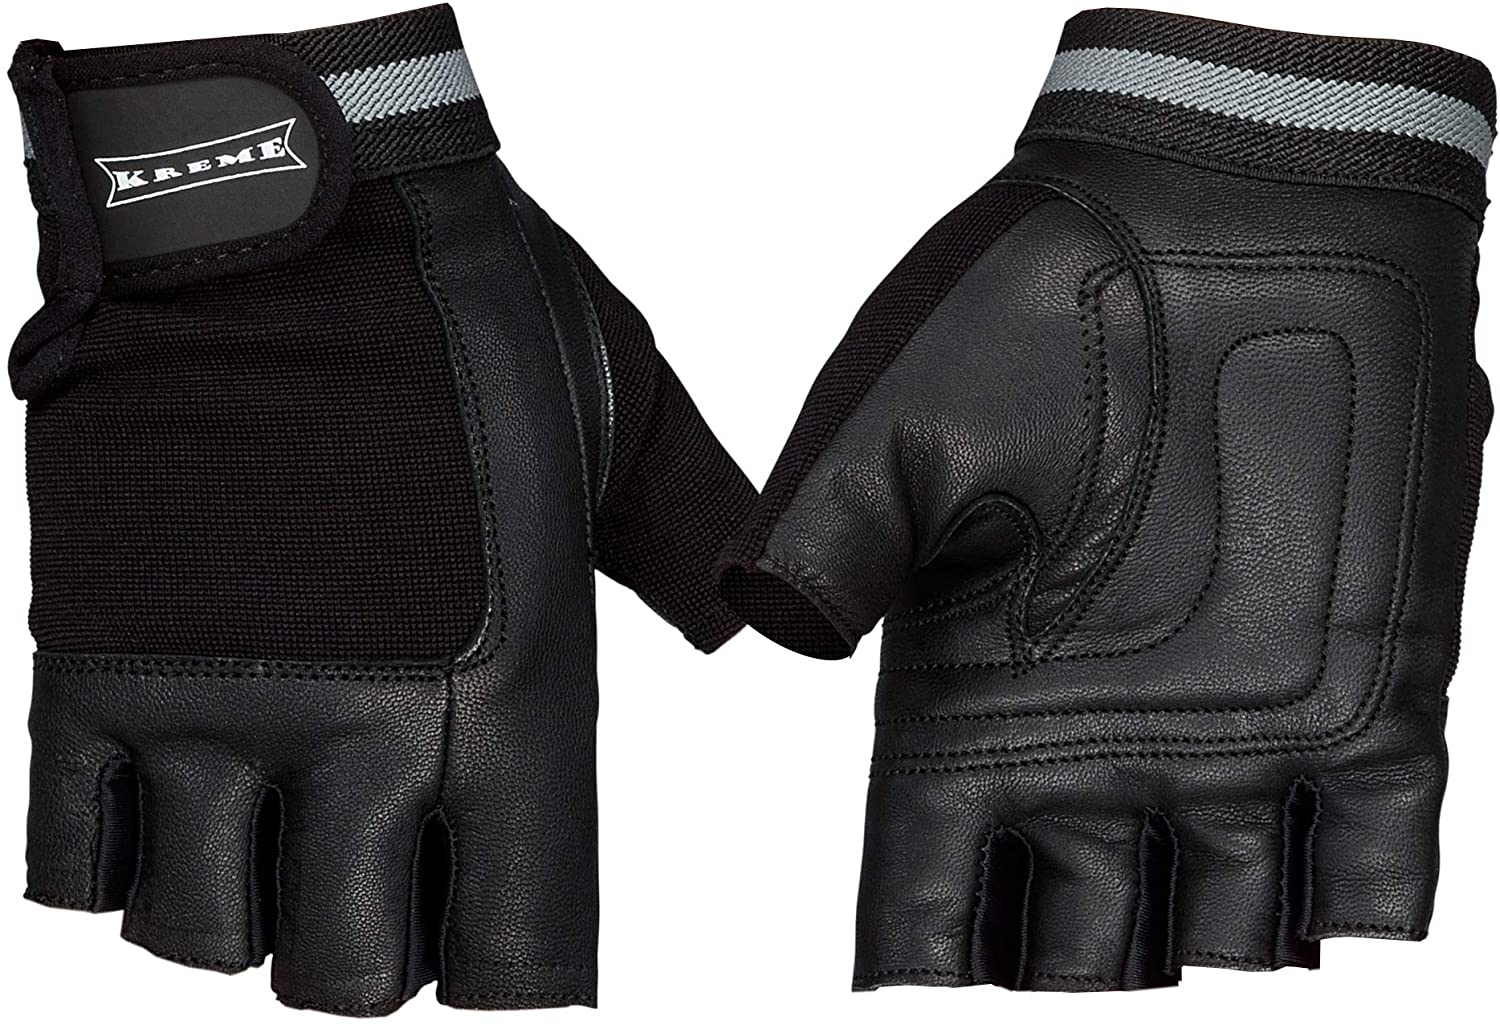 Kreme Apparel Workout Gloves Weight Lifting and Fitness Training Leather with Full Protection and Fingerless Grip